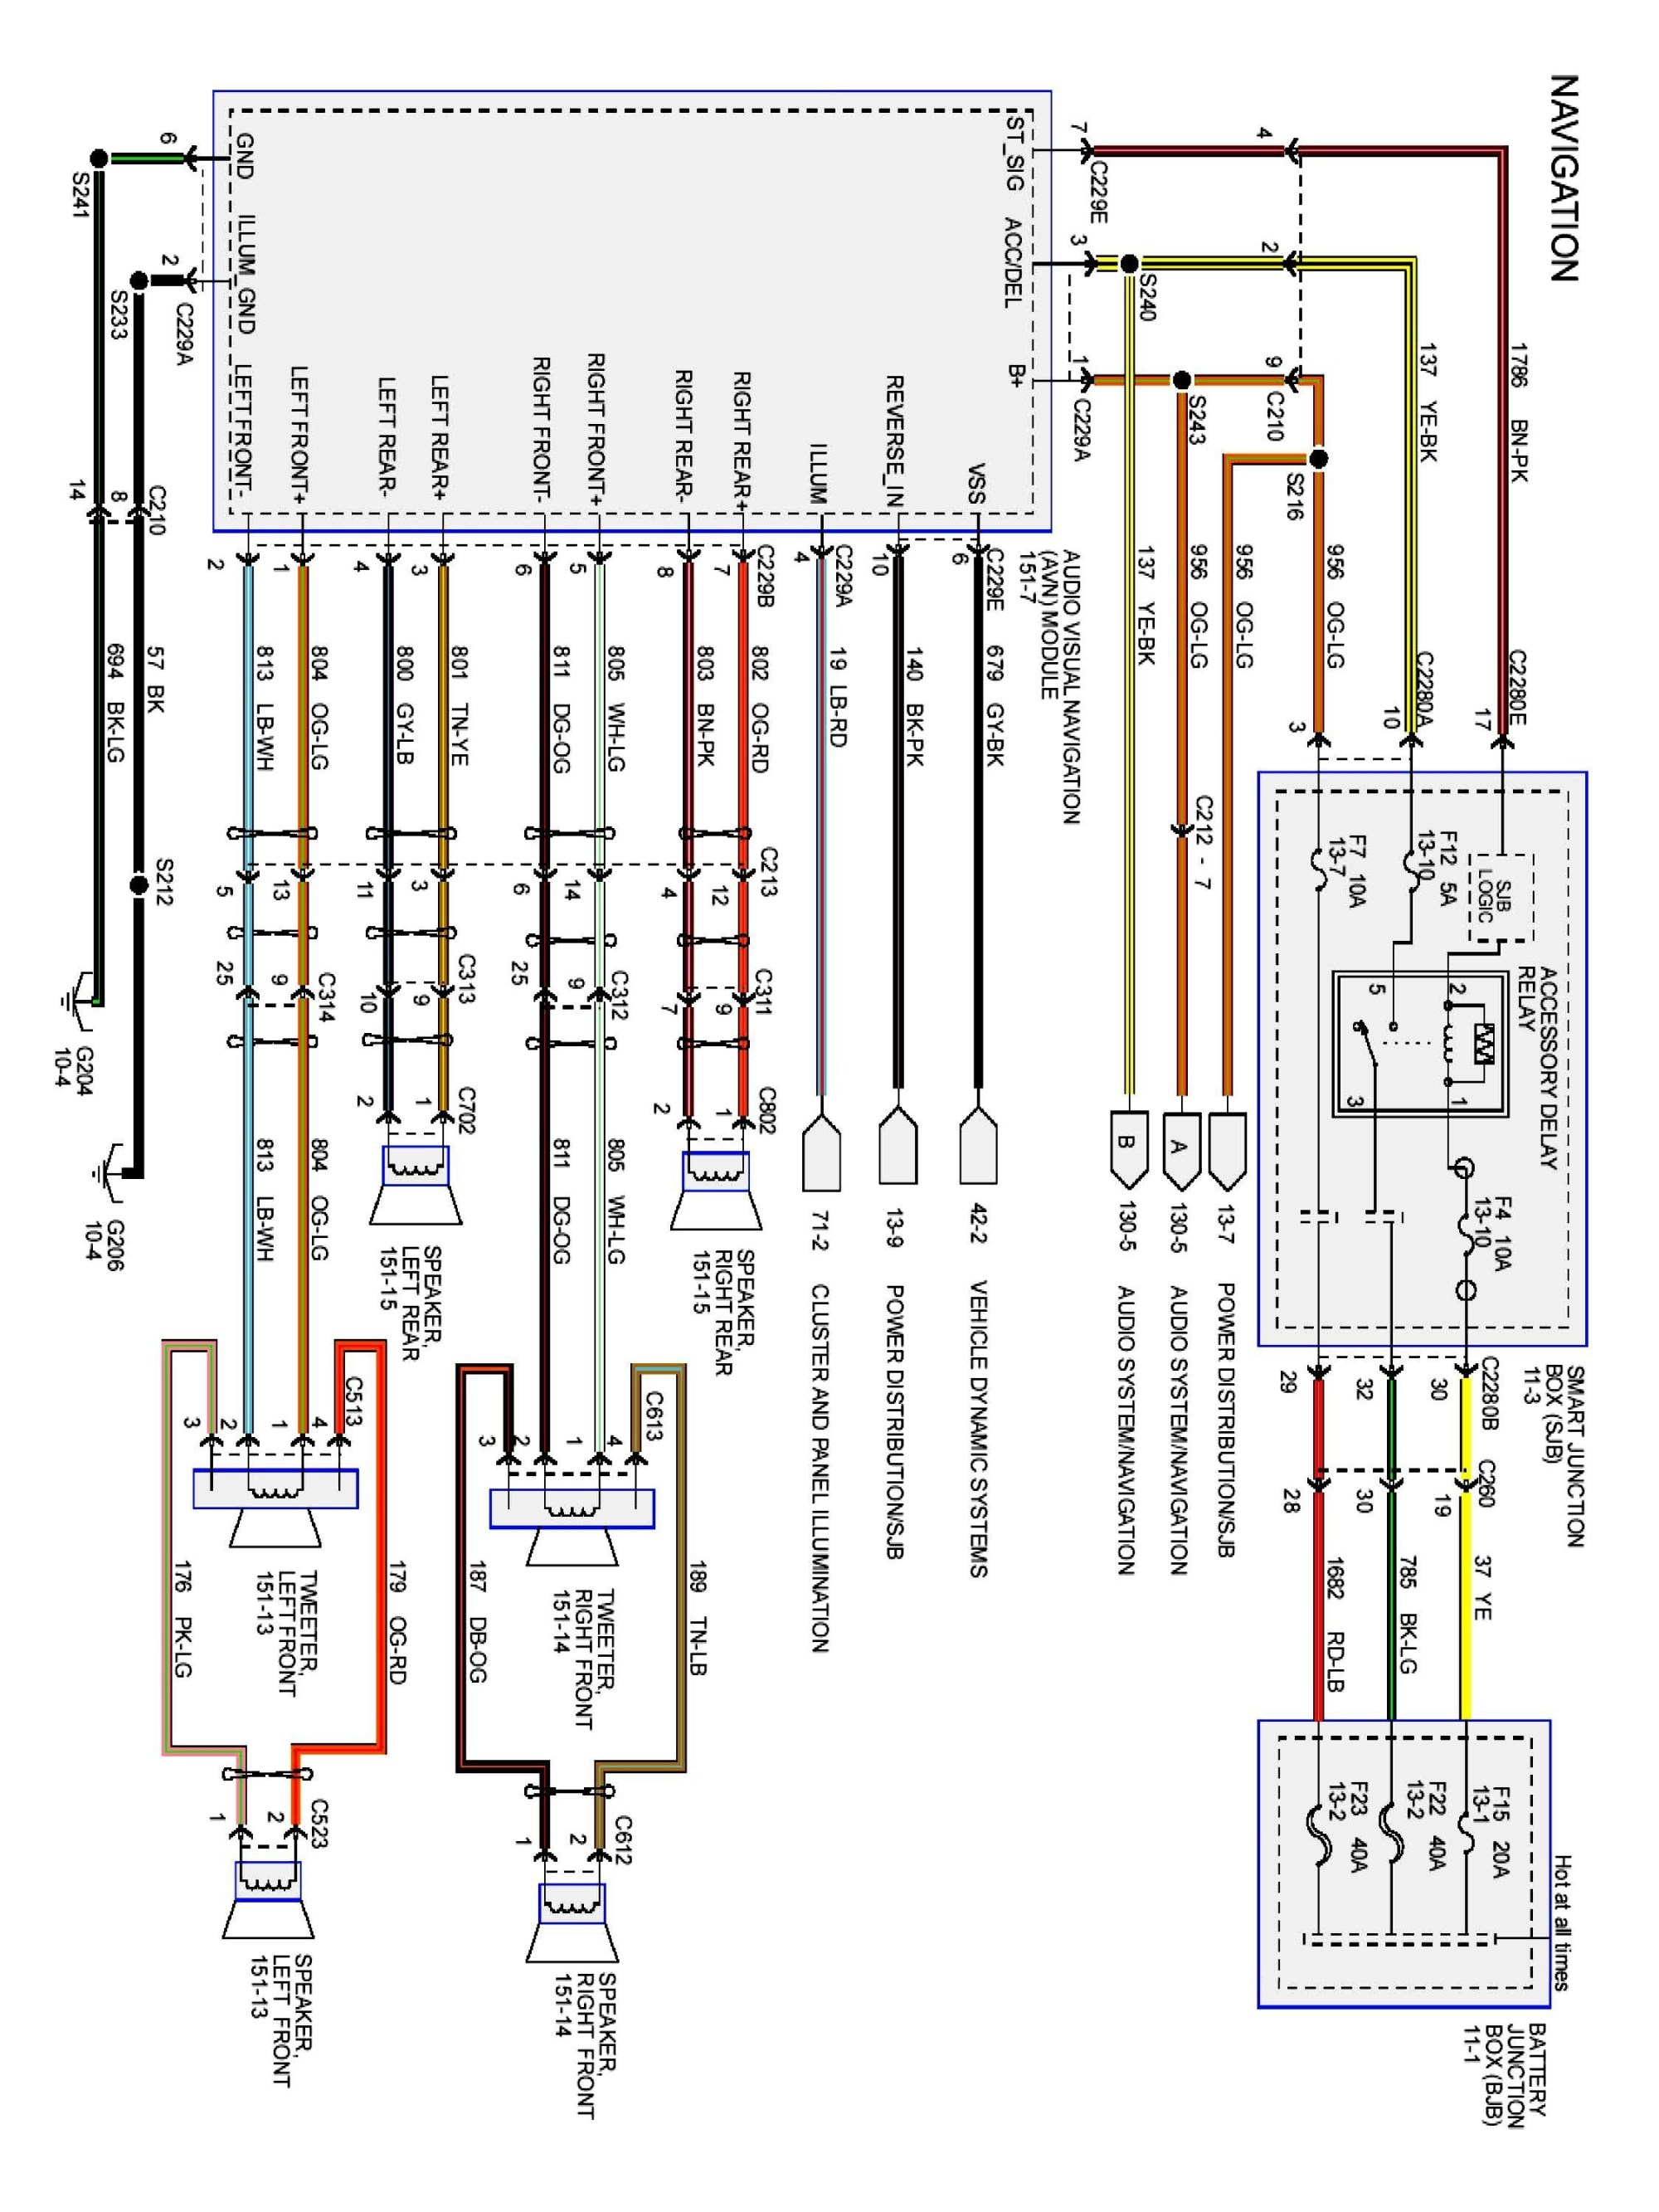 hight resolution of 98 f150 wiring diagram 01 03 ford f 150 wiring diagram trusted wiring diagram of 98